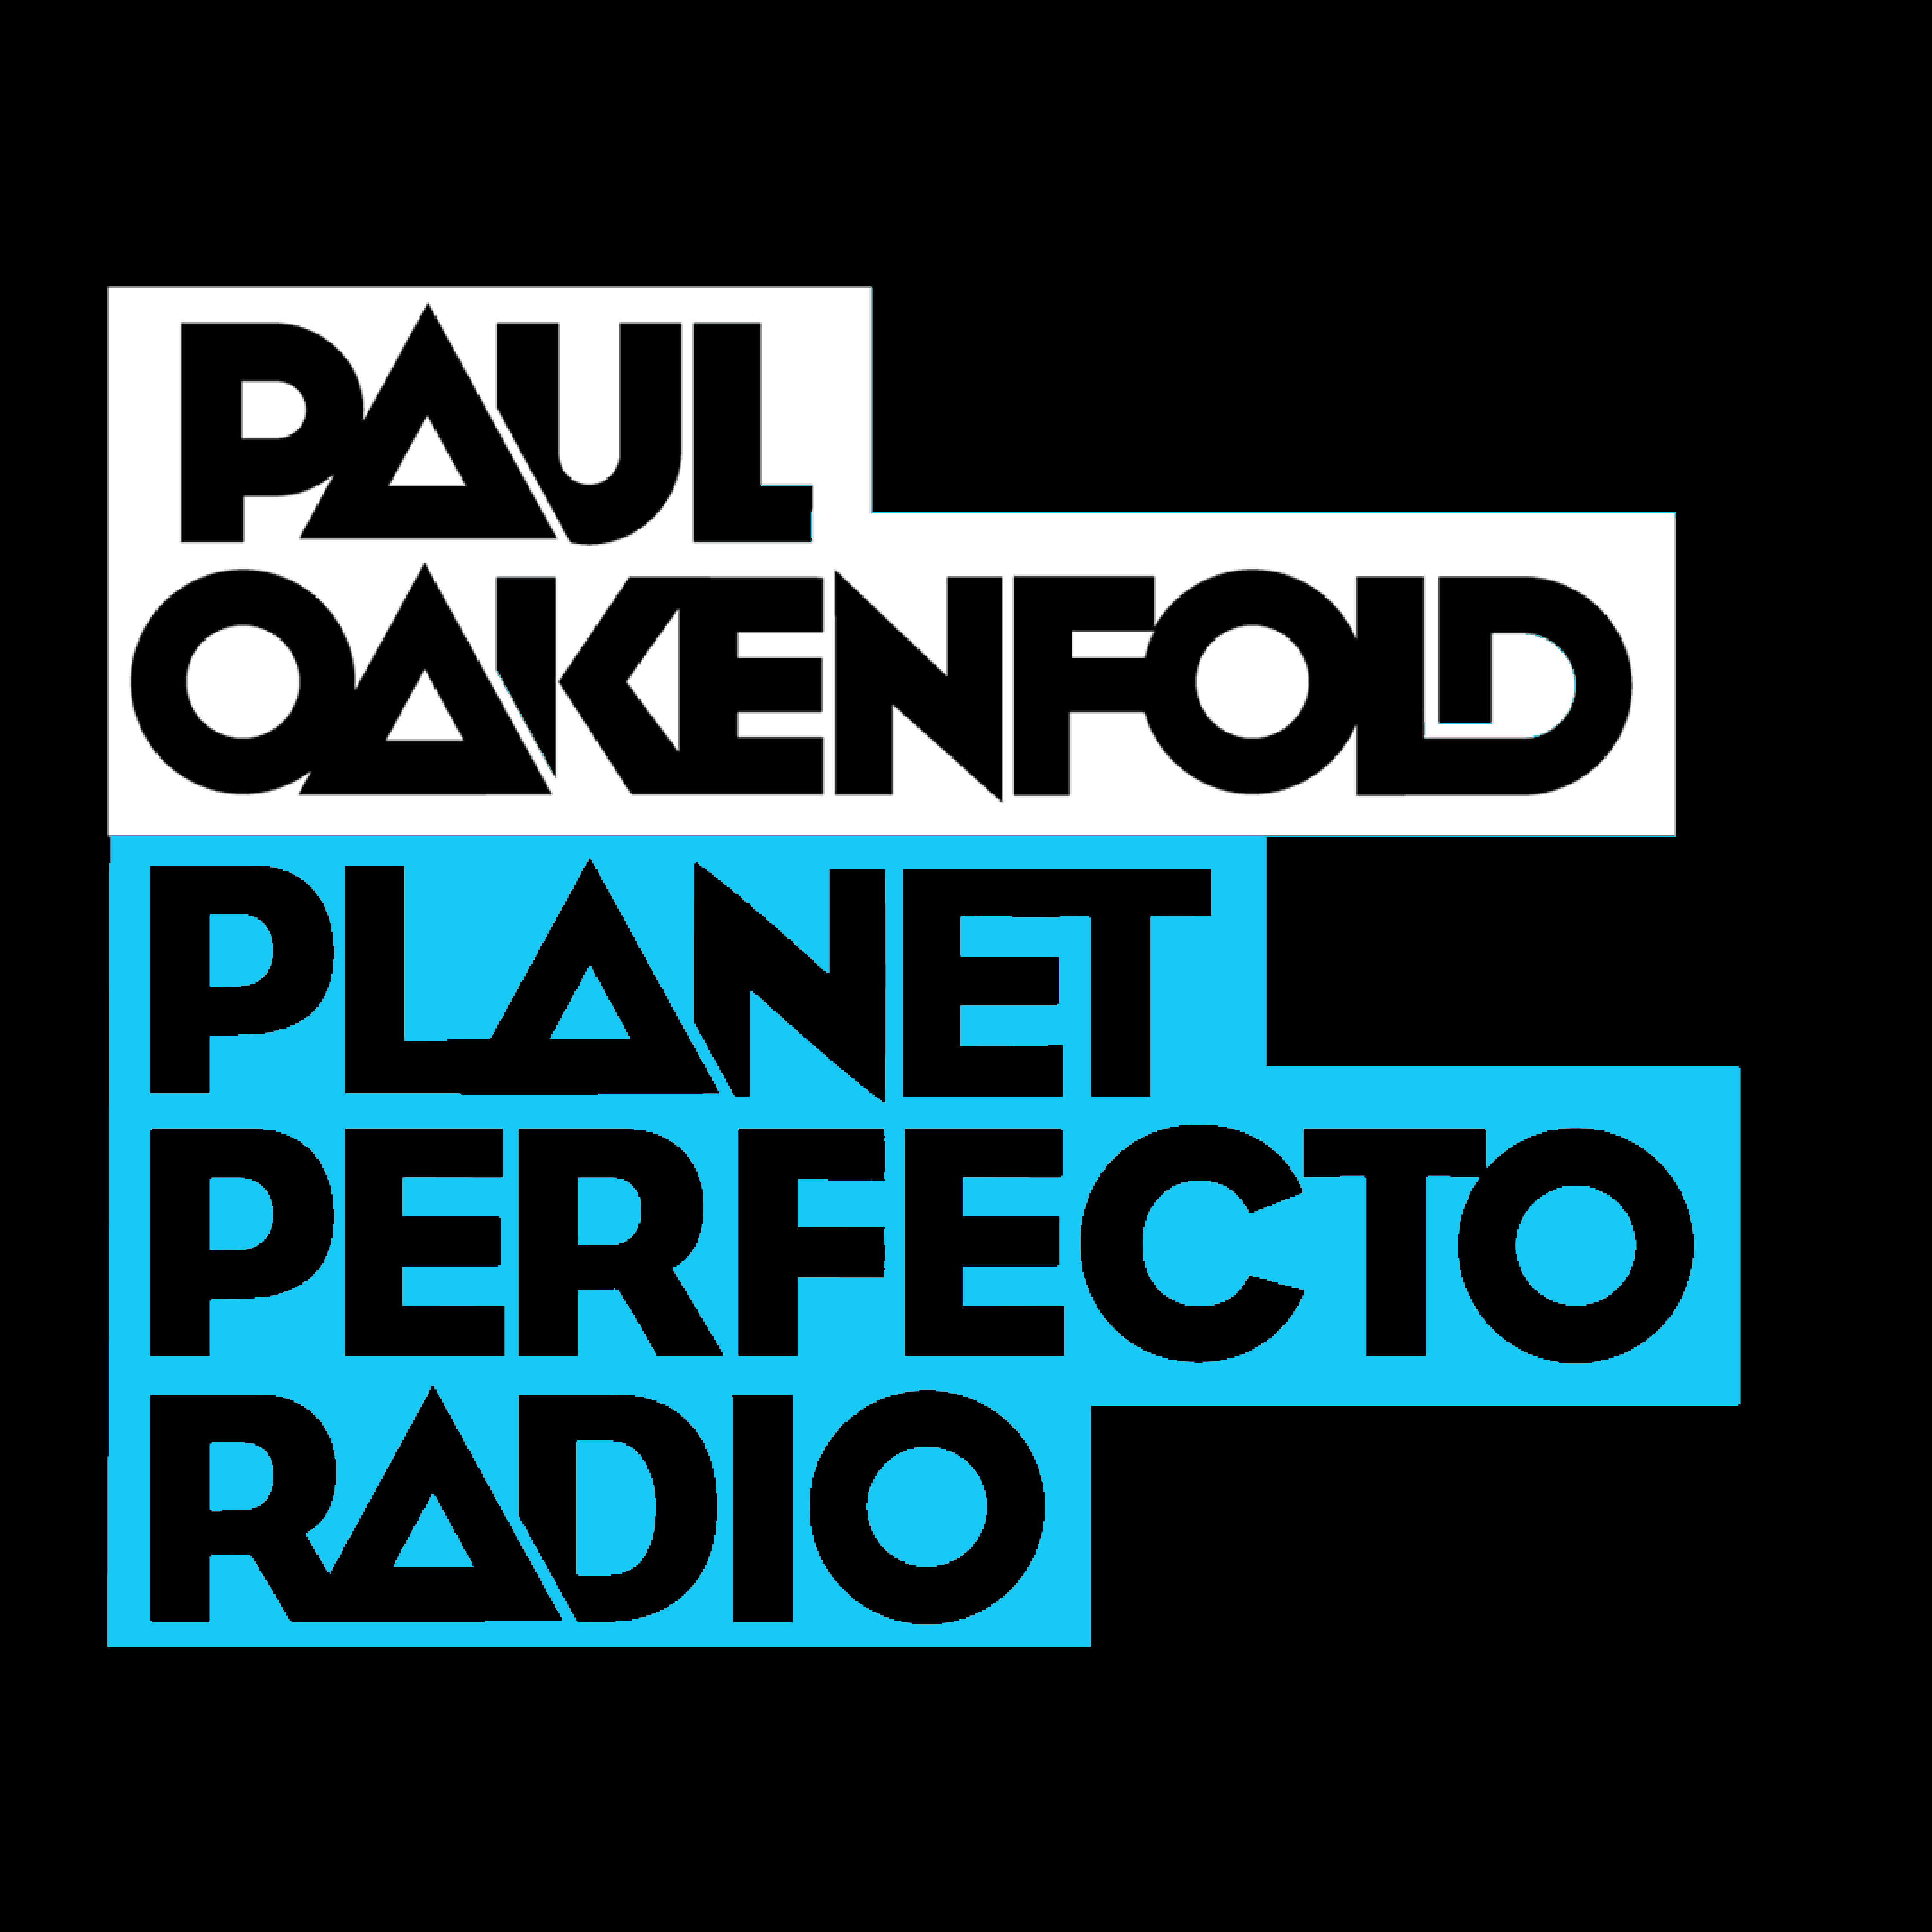 Planet Perfecto Podcast 558 ft. Paul Oakenfold